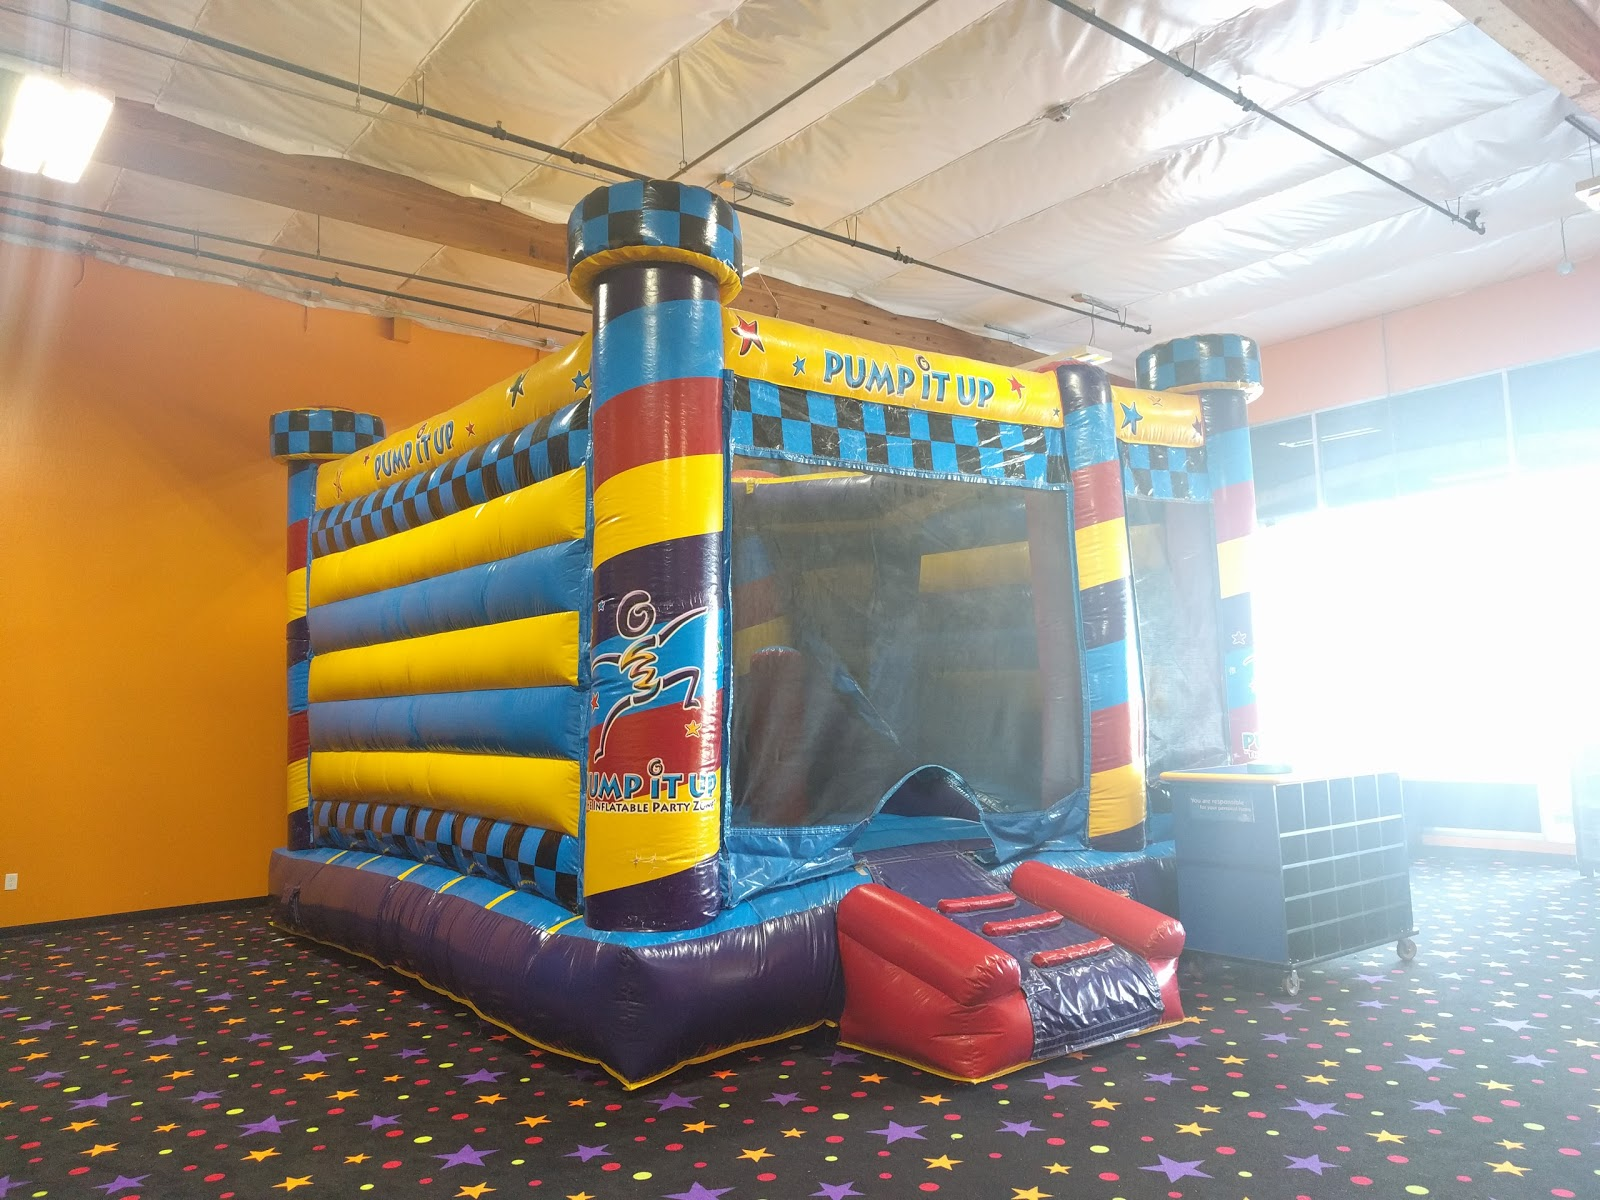 Stuck For Kids Birthday Party Ideas Then Look No Further Pump It Up Of San Jose CA Is A Venue Like Other